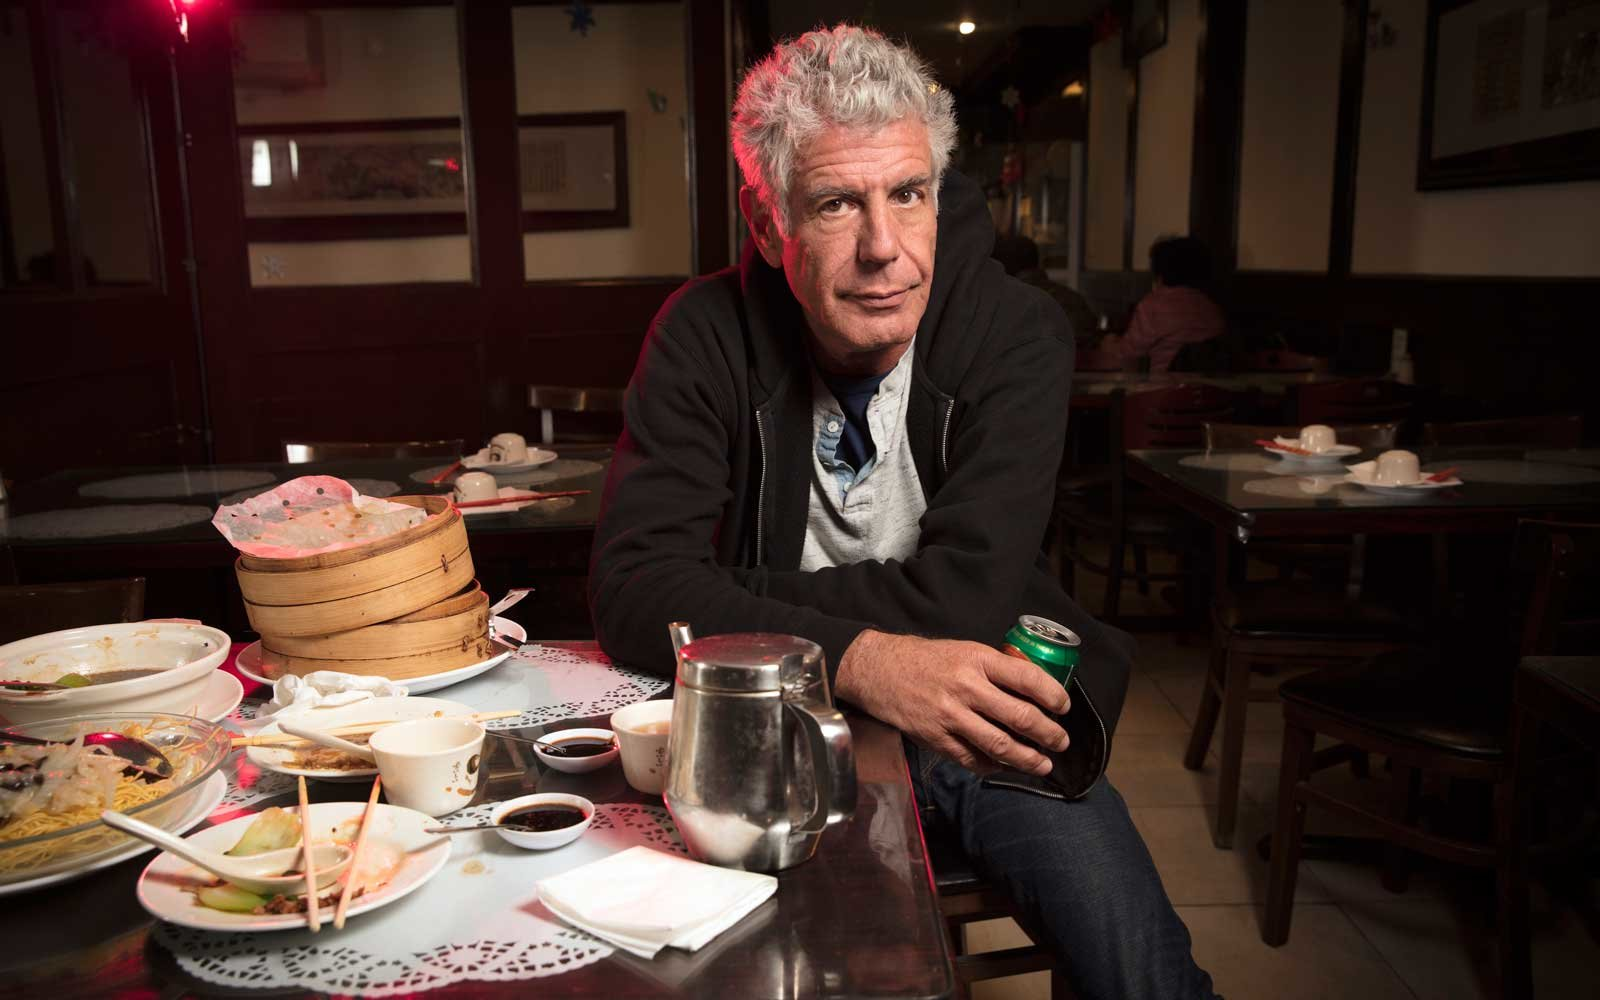 anthony-bourdain-parts-unknown-newseason0417.jpg